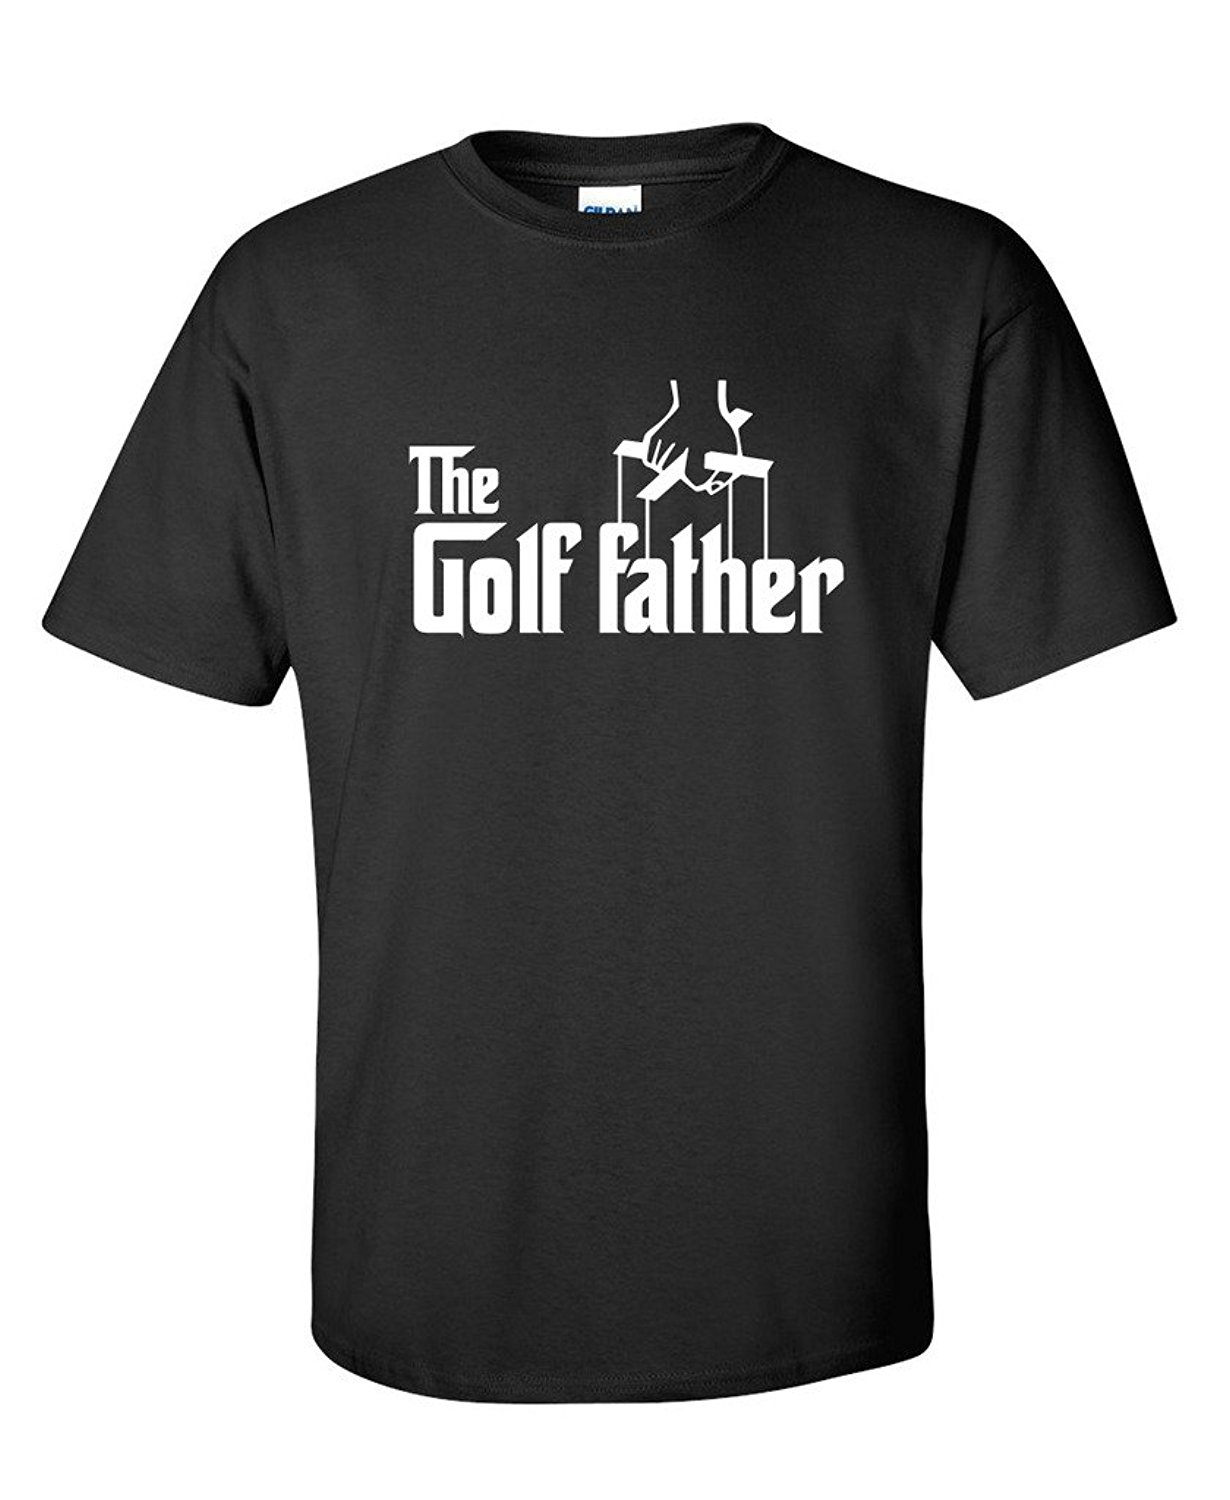 The Golfer Father Golfers Fathers Day Gift for Dad Sarcastic Humor Funny T Shirt New T-Shirts Unisex Funny Tops Tee